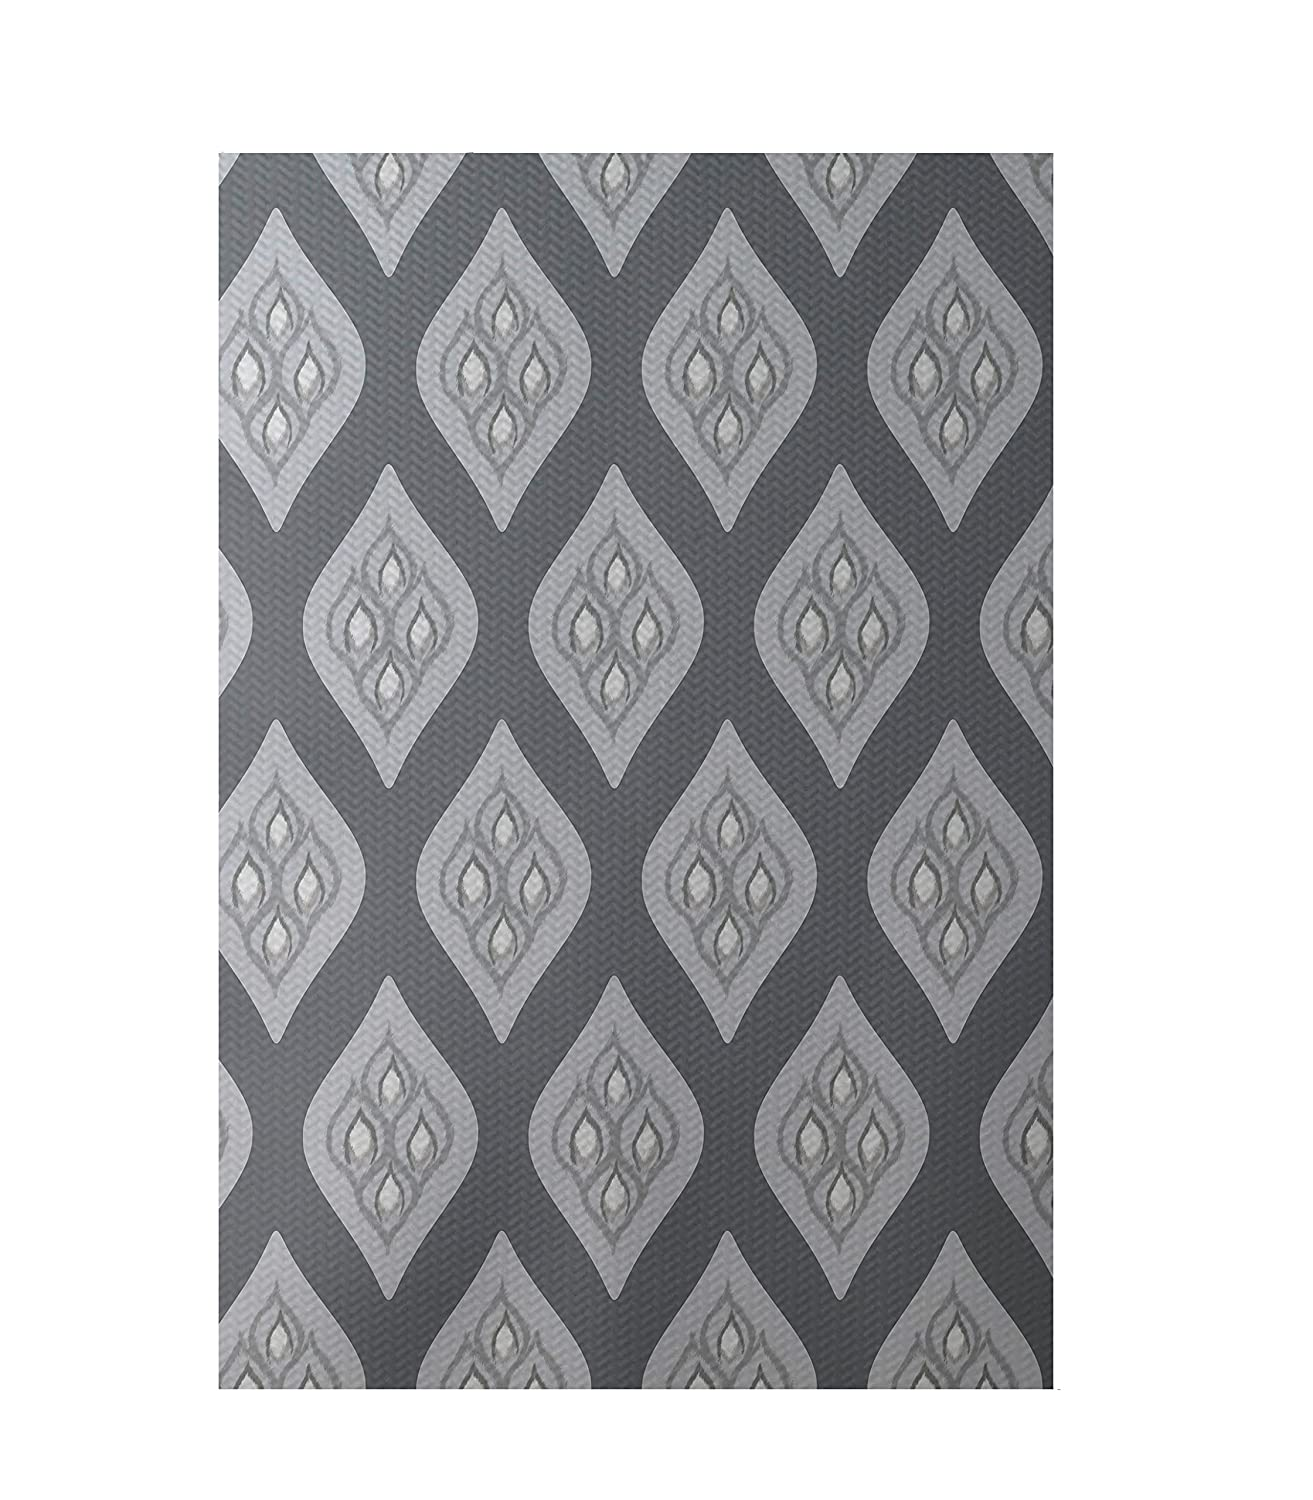 E by design RGN217GY3GY1-23 Tail Feathers Geometric Print Indoor//Outdoor Rug Steel Gray